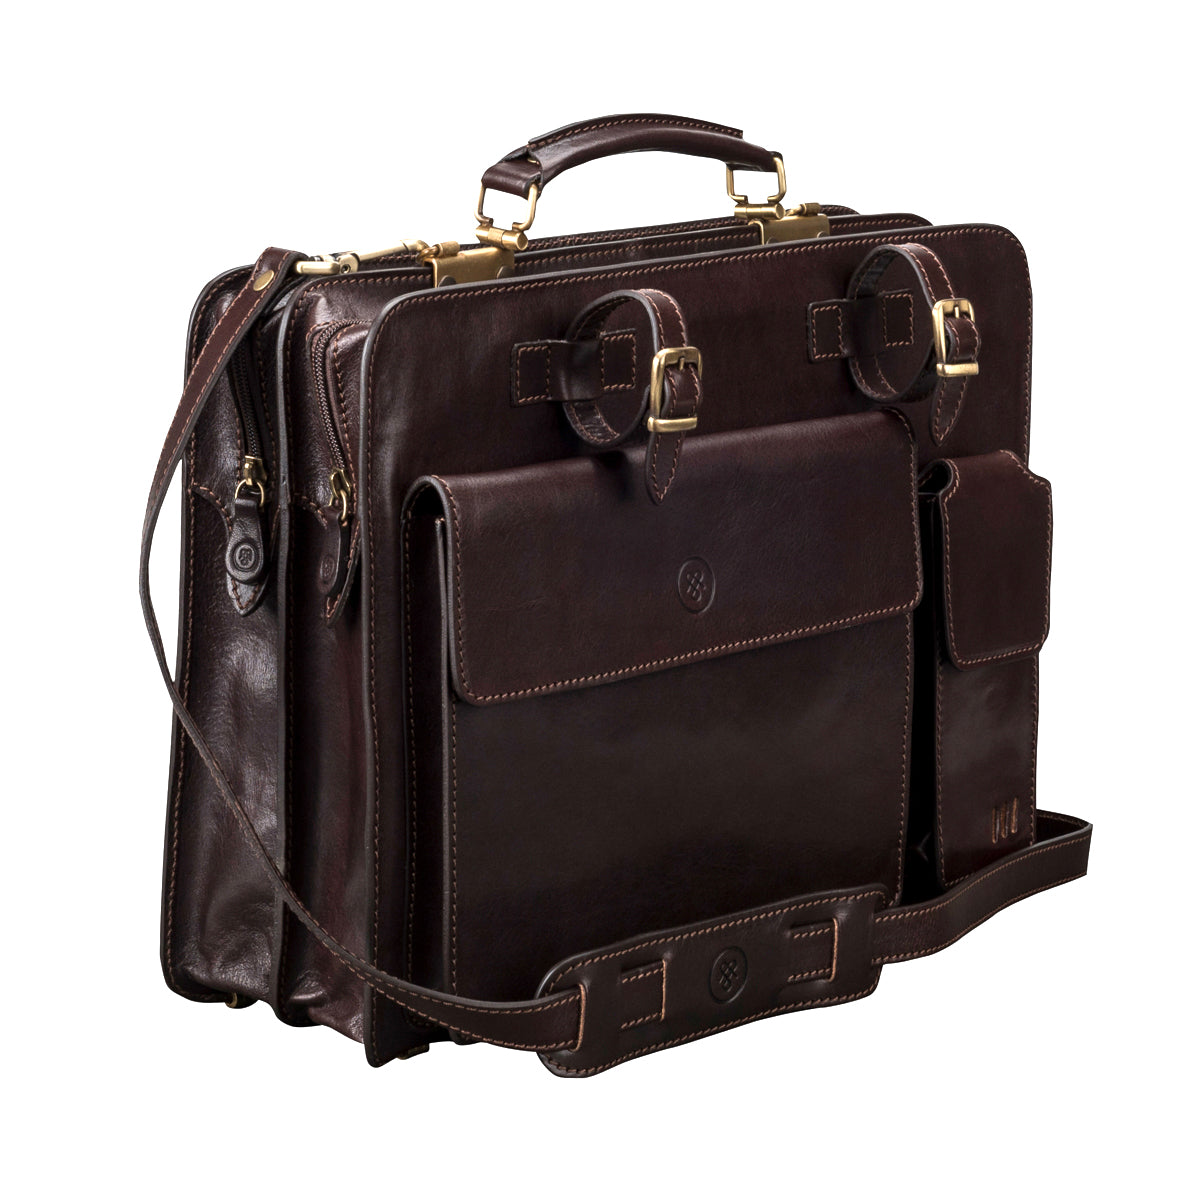 Image 2 of the 'Alanzo' Brown Veg-Tanned Leather Briefcase